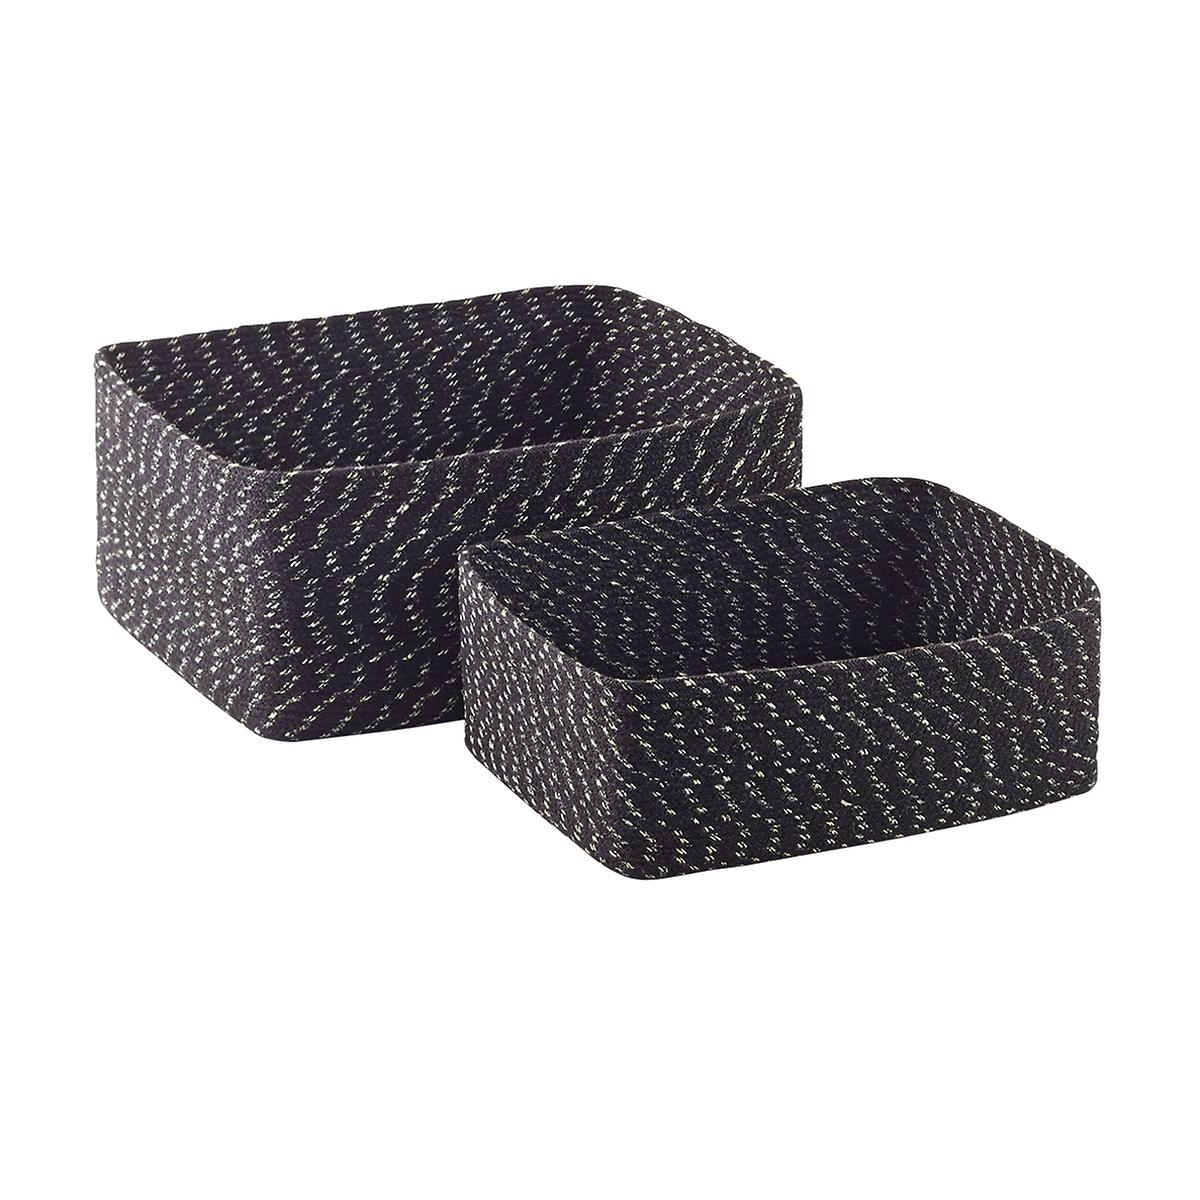 Black & Natural Seine Woven Storage Bins